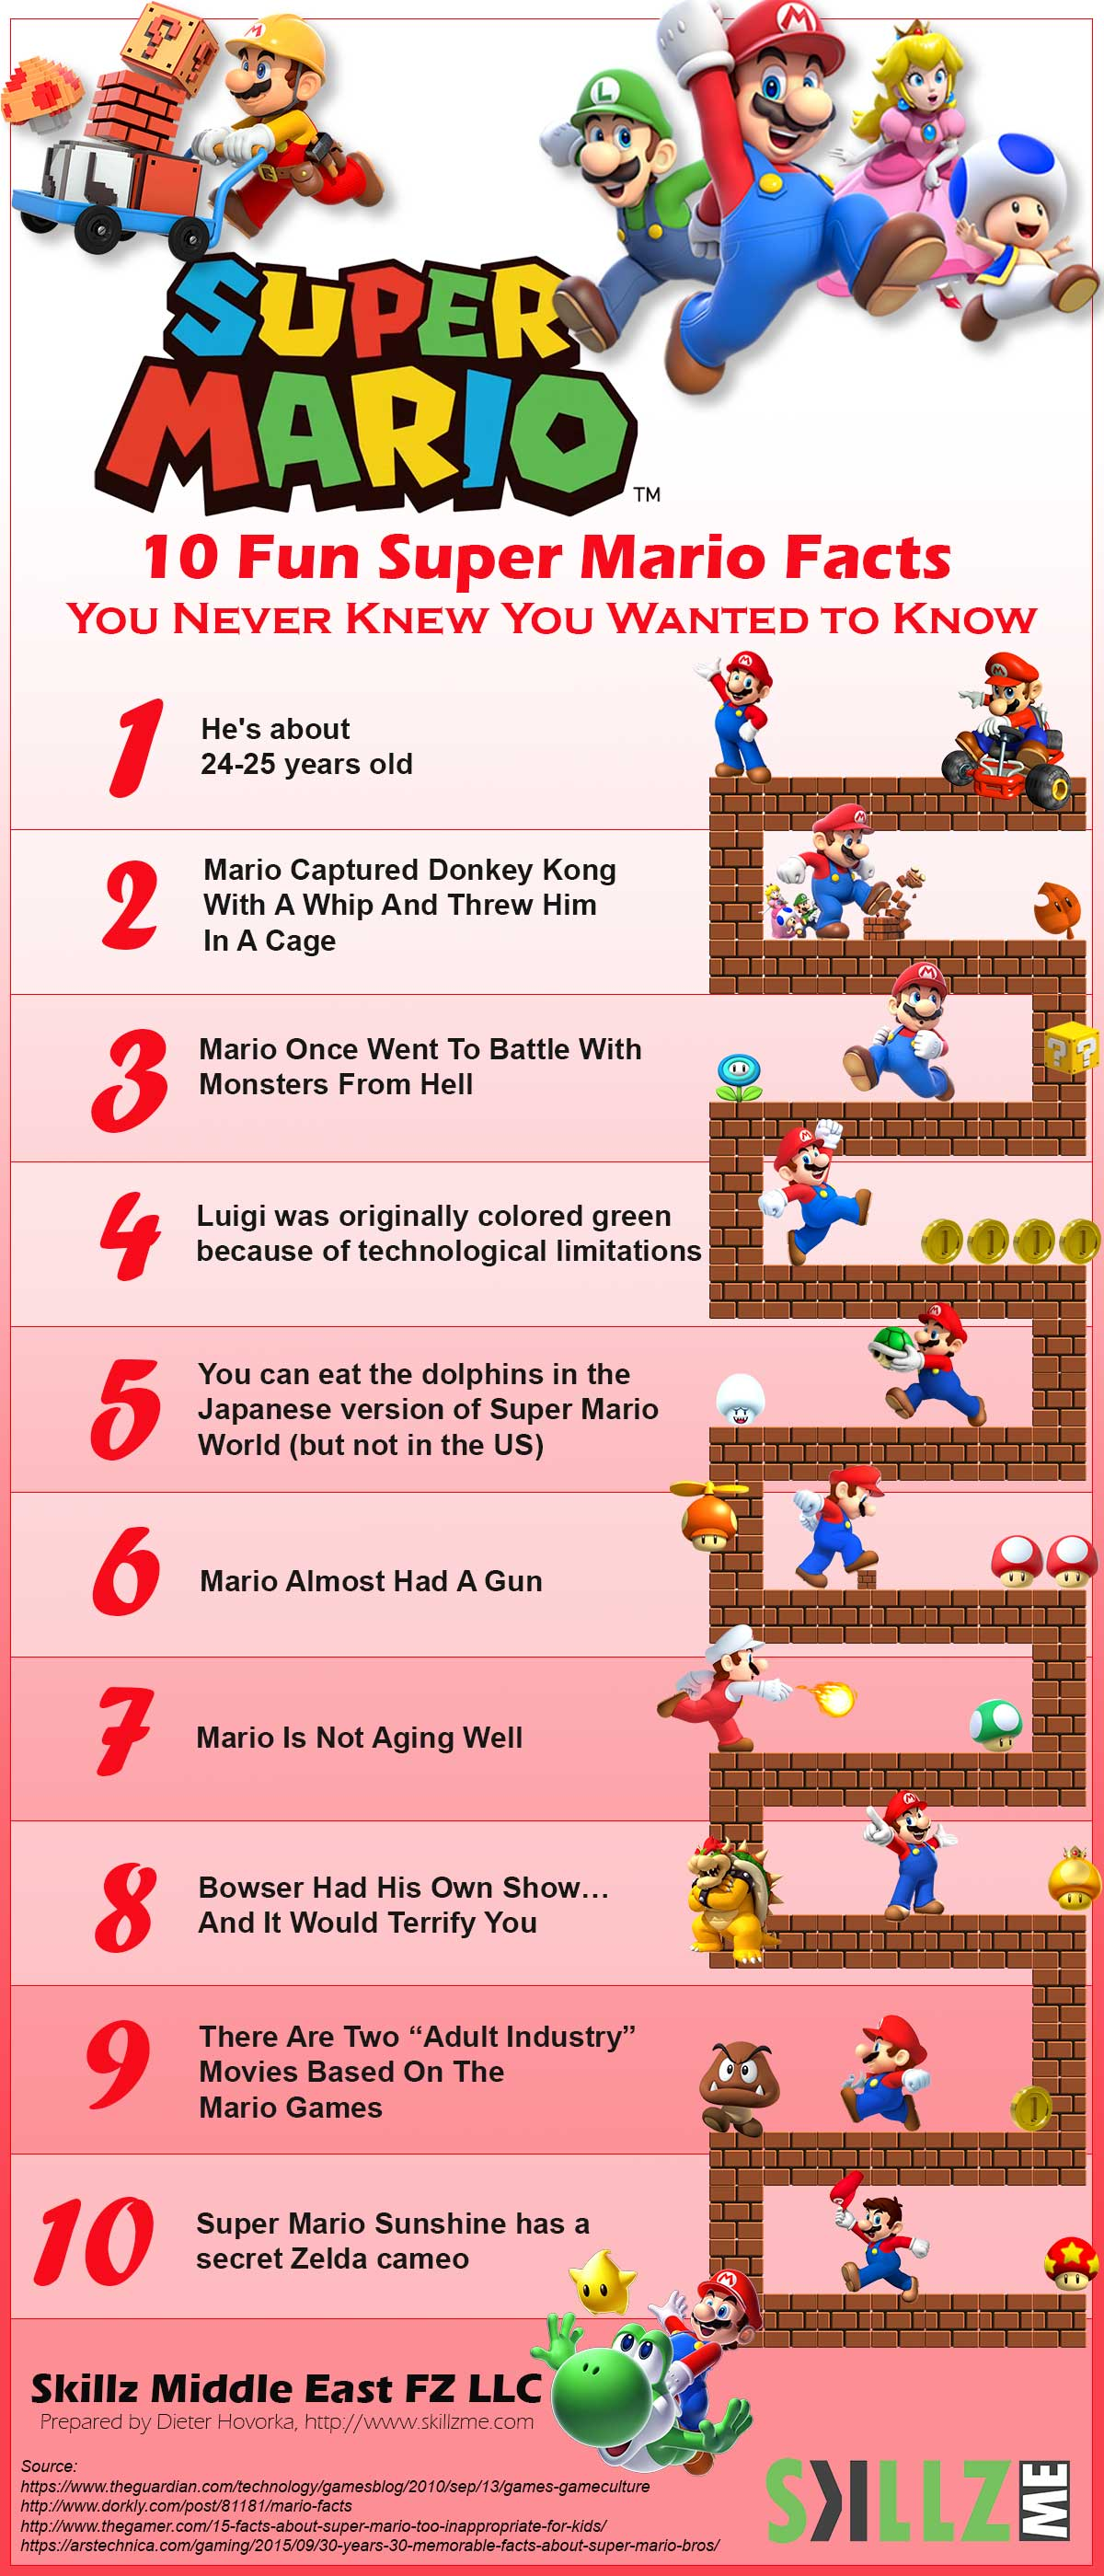 10 Fun Super Mario Facts You Never Knew You Wanted To Know [Infographic]